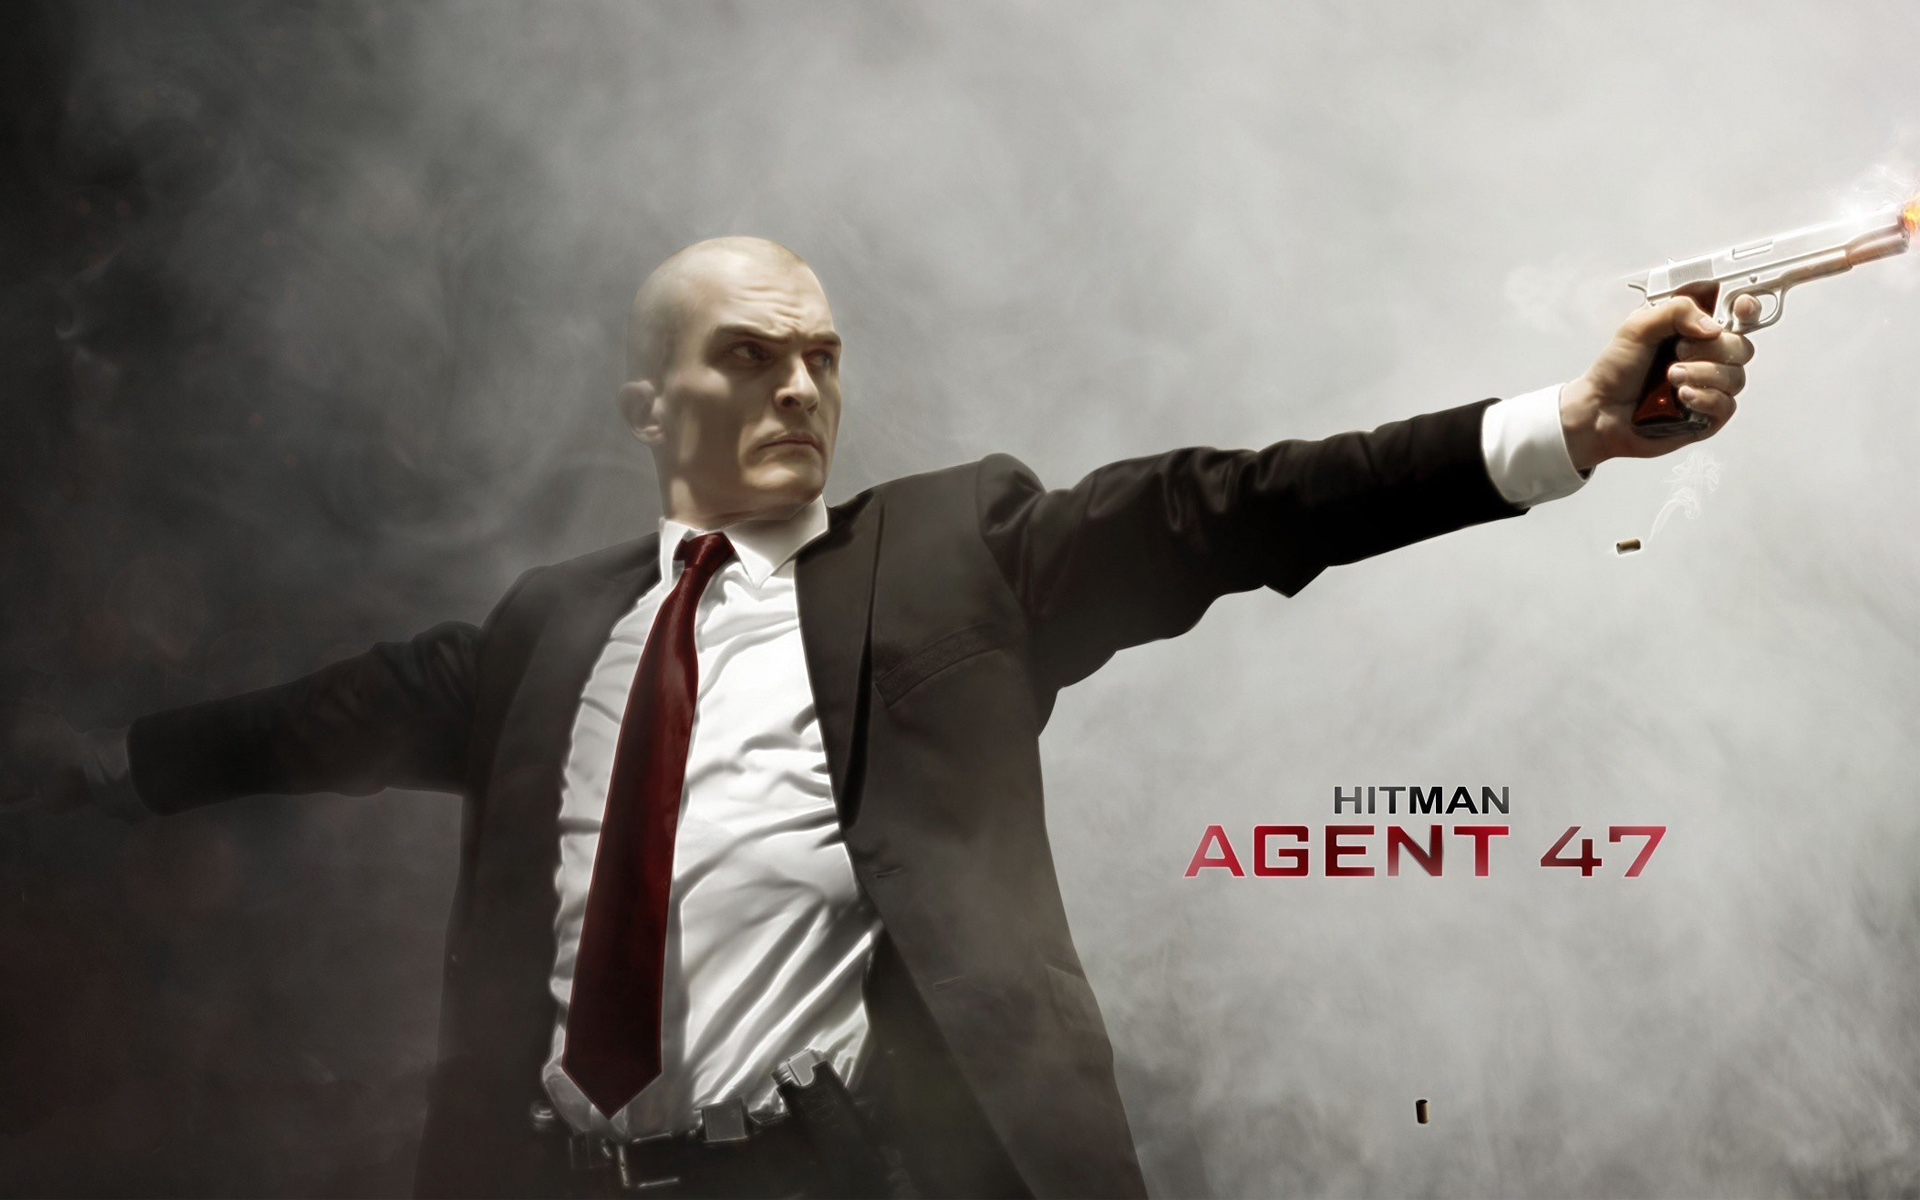 Hitman agent 47 hd wallpaper background image 1920x1200 id 614163 wallpaper abyss - Agent 47 wallpaper ...